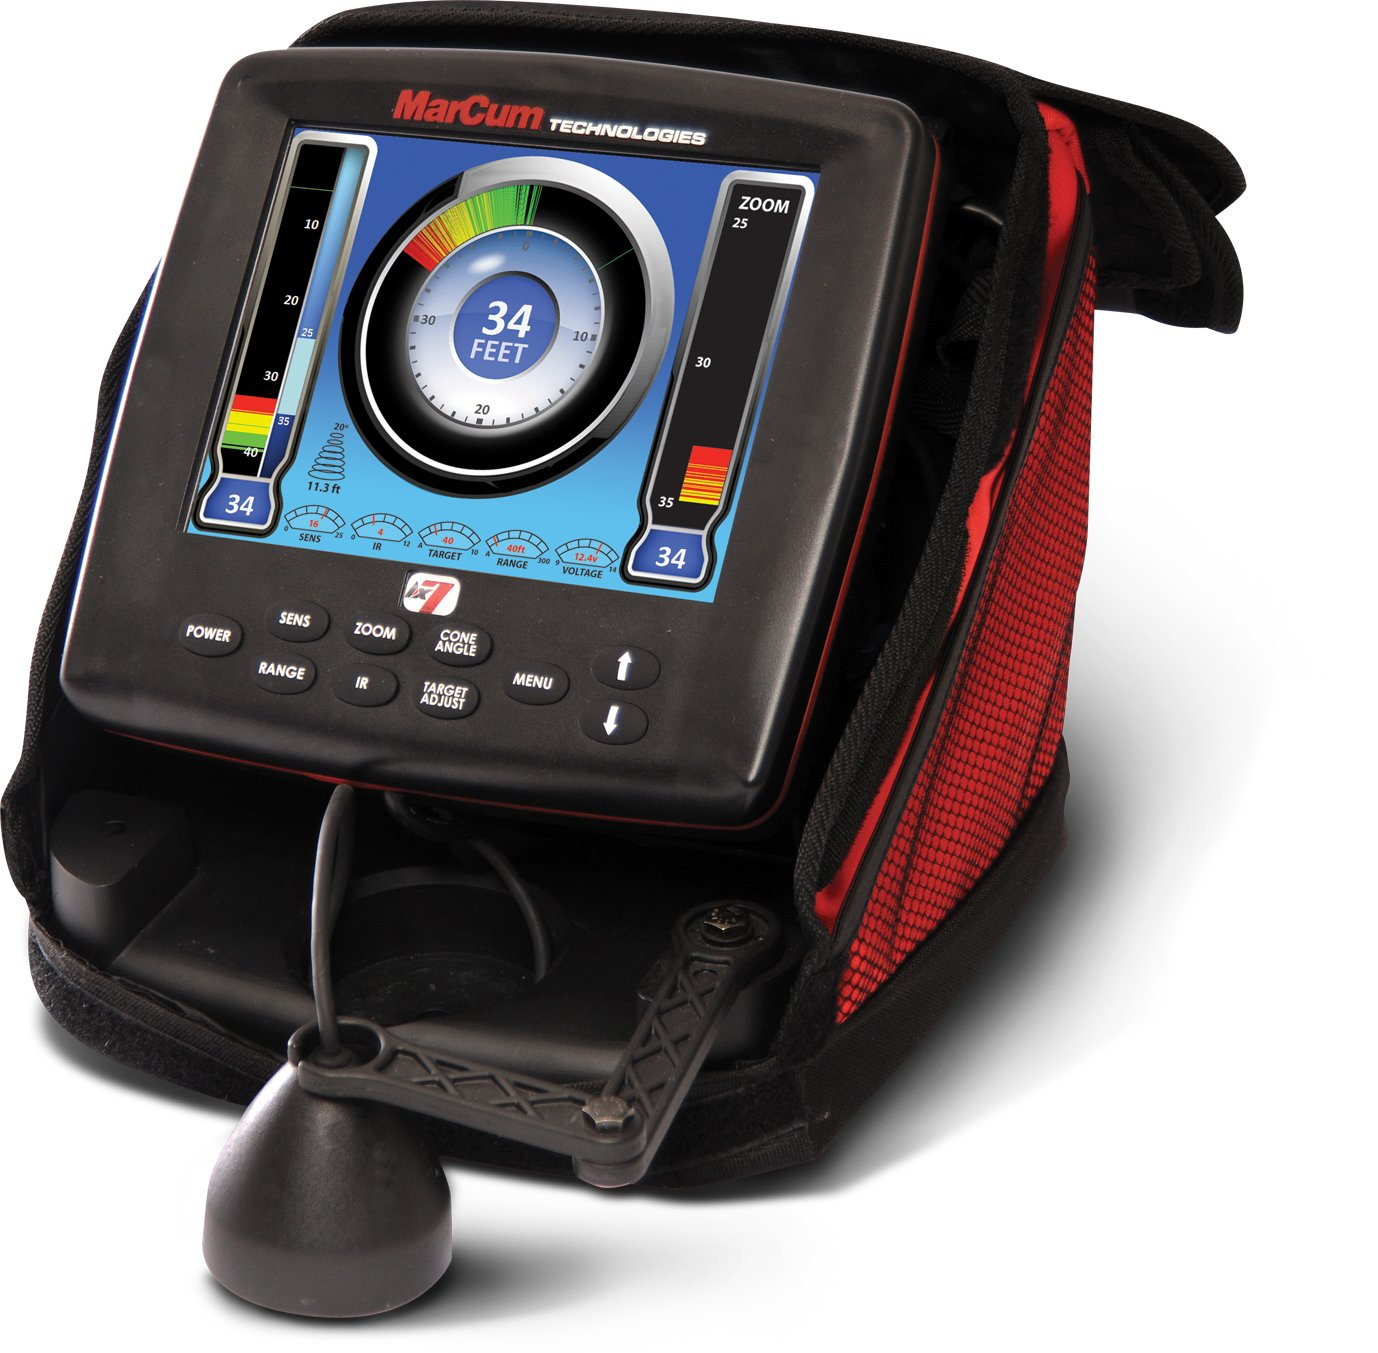 Marcum LX-7 Ice Fishing Sonar System/Fishfinder - LX-7 by MarCum